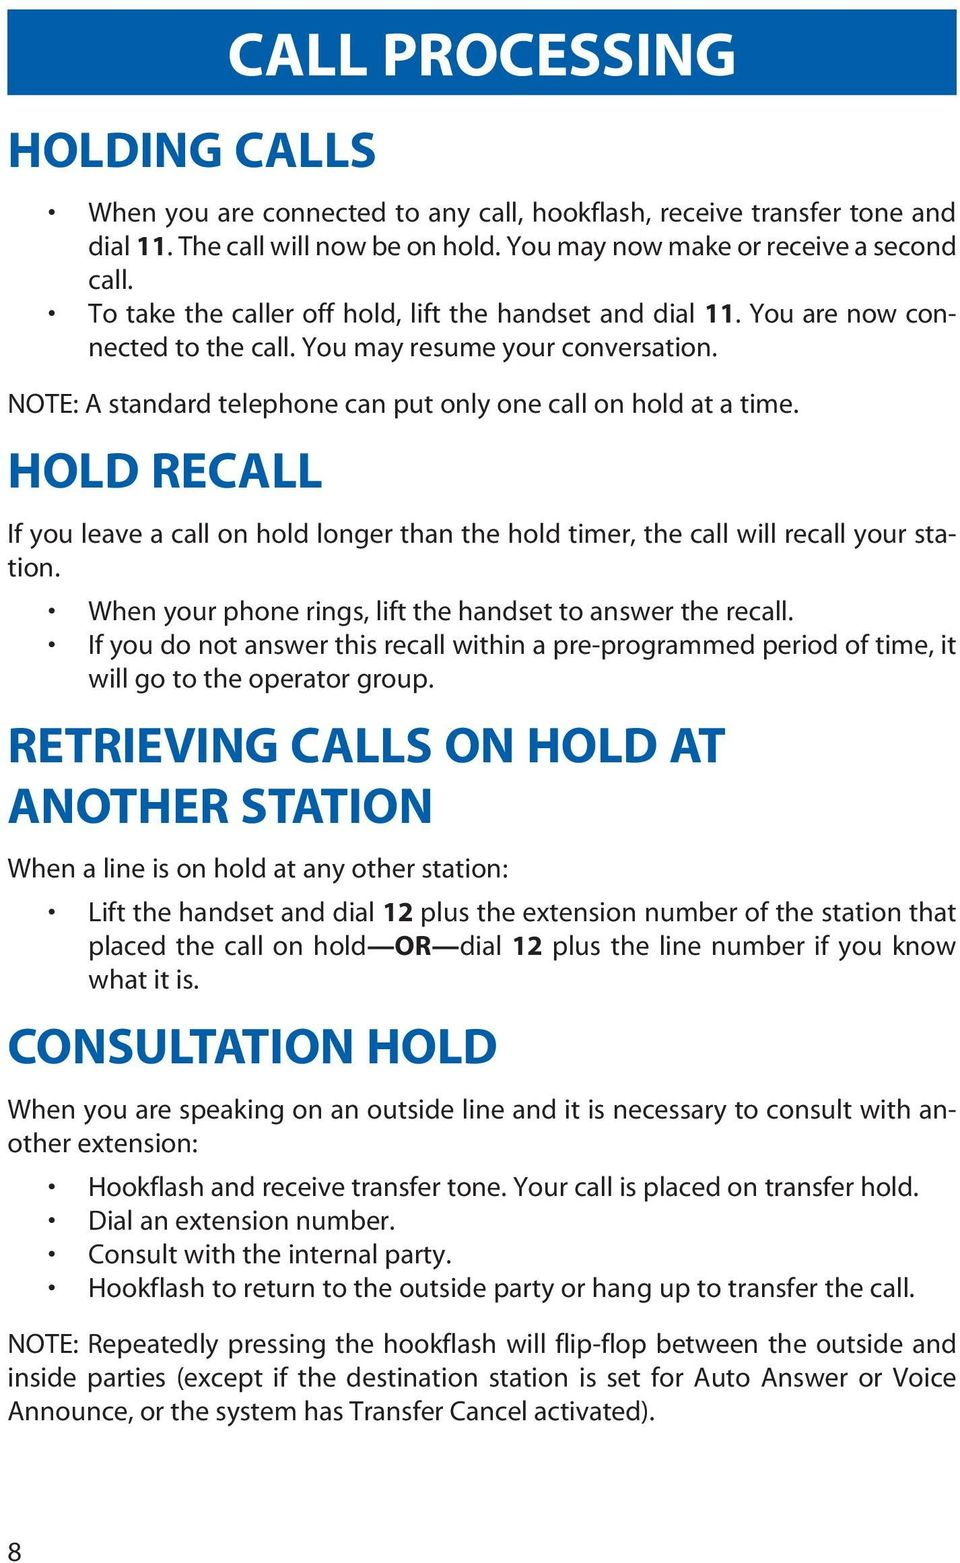 HOLD RECALL If you leave a call on hold longer than the hold timer, the call will recall your station. When your phone rings, lift the handset to answer the recall.